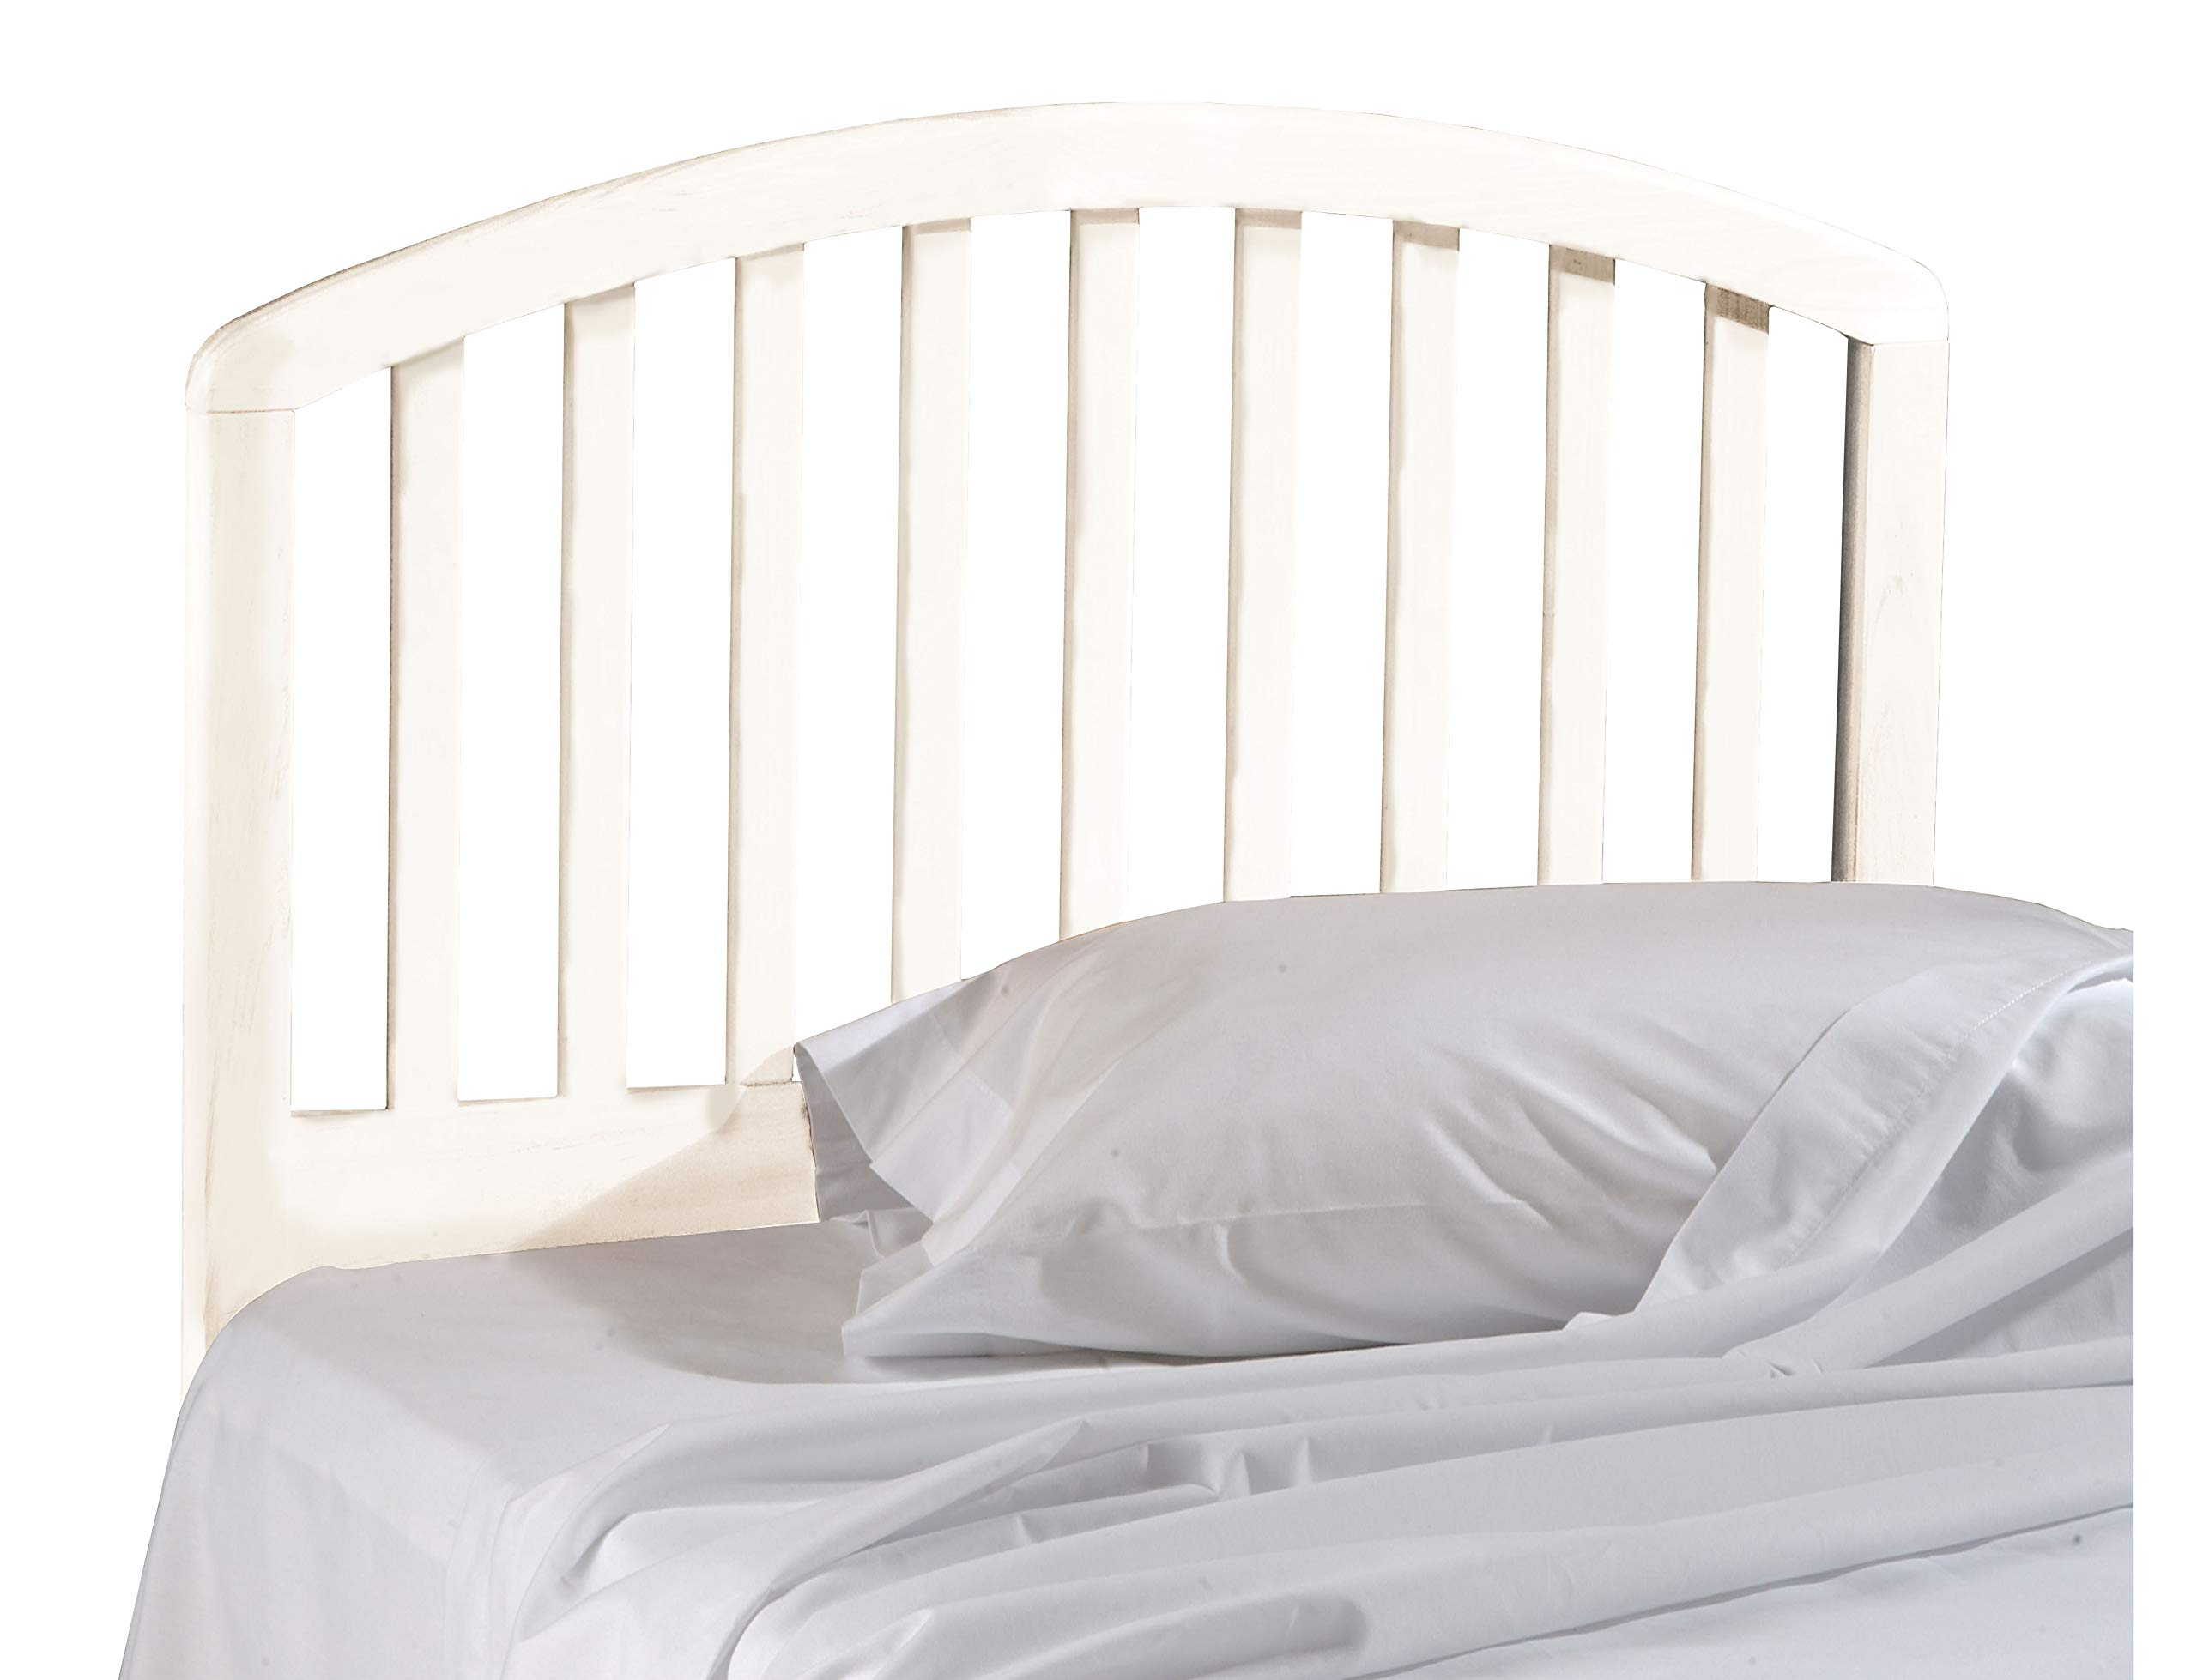 Hillsdale Carolina Headboard, Bed Frame Not Included, Full/Queen, White